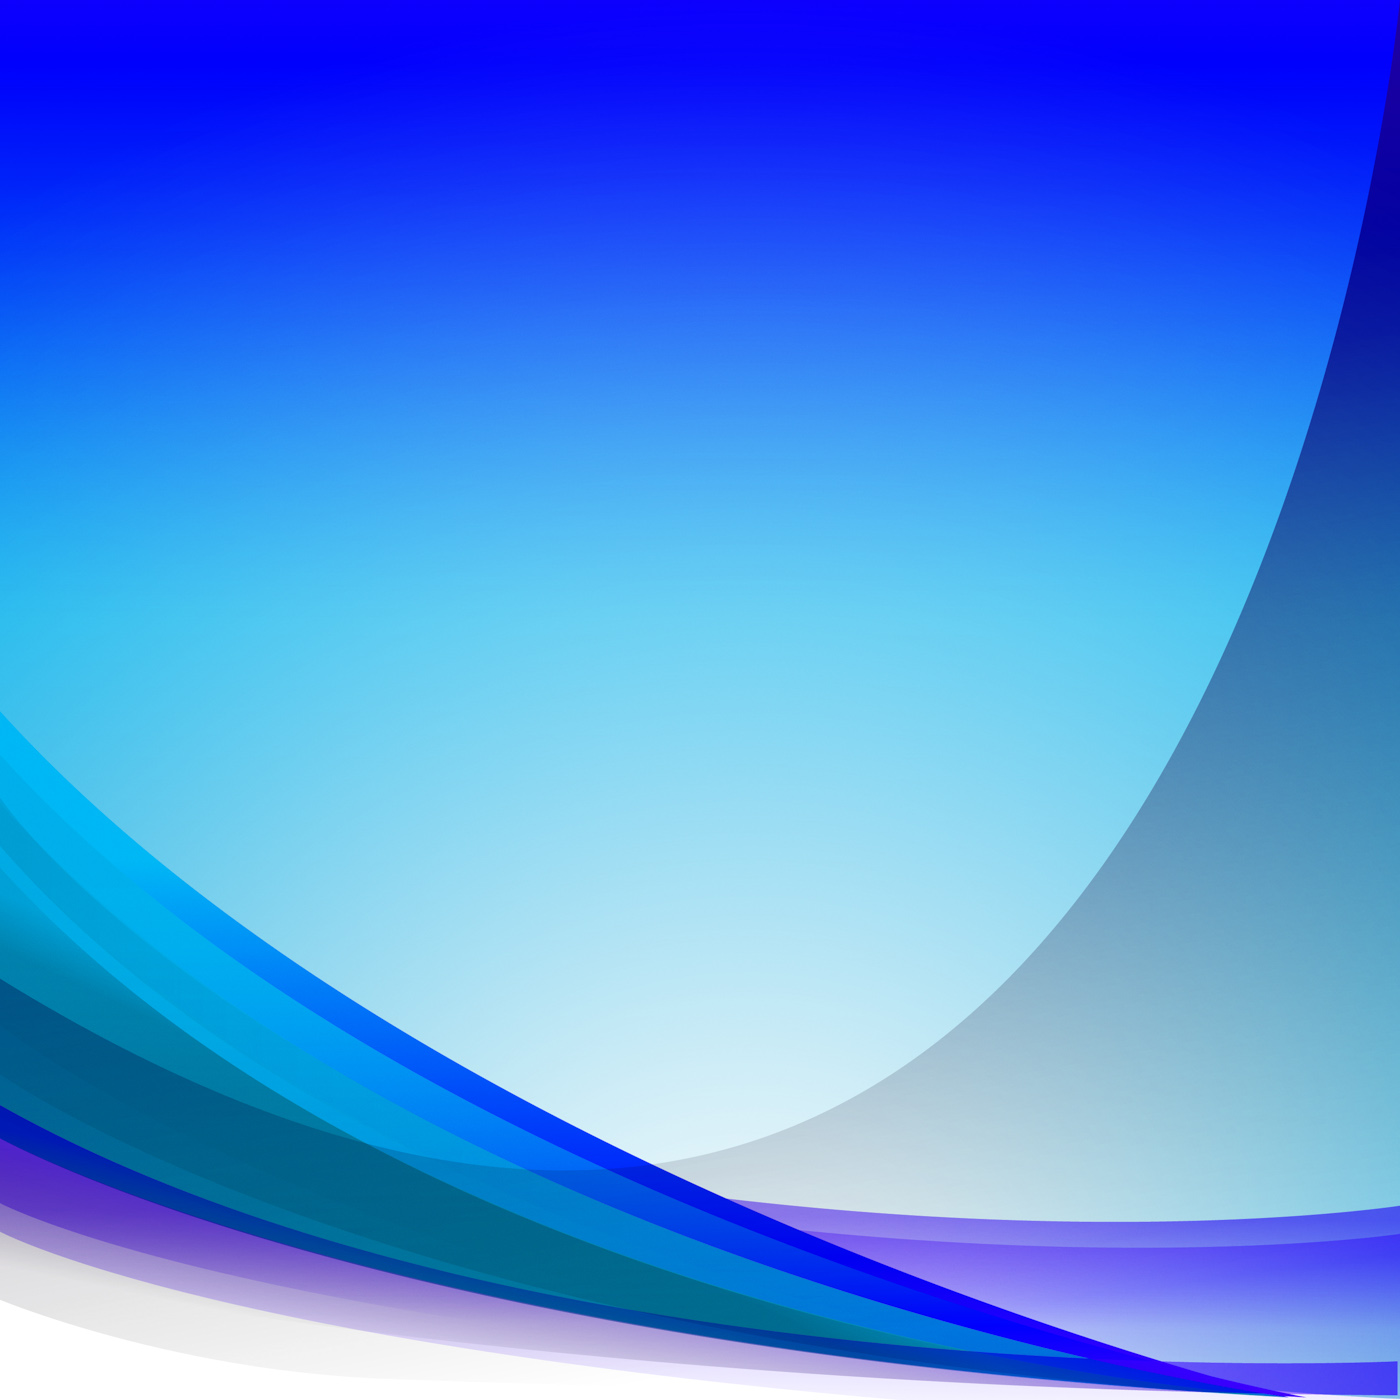 Blue wave background means soft effect wallpaper or modern art photo